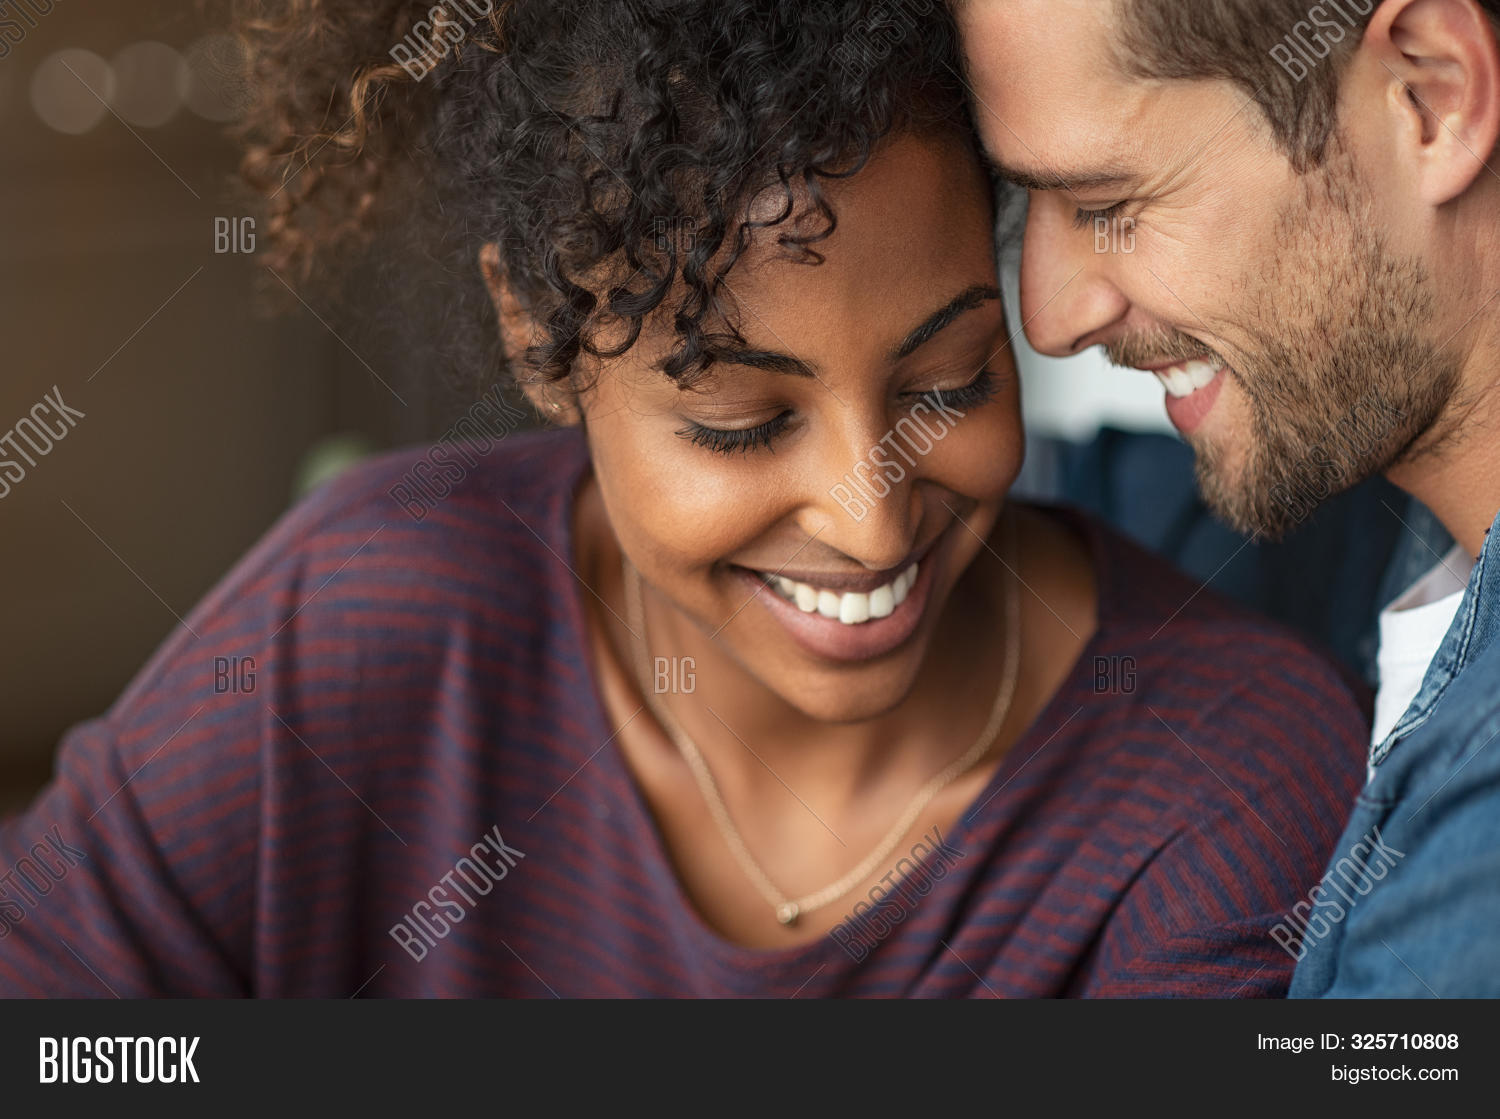 african,african woman,american,attractive,beautiful,black,bonding,boyfriend,boyfriend and girlfriend,cheerful,close up face,closeup,couple,cuddle,cuddling,dating,day,embrace,embracing,embracing couple,expressions,face,flirting,girl,girlfriend,guy,happiness,happy,hug,intimate,kiss,lifestyle,love,love couple,man,multiethnic,passion,passionate,people,portrait,relationship,romance,romantic,smiling,together,toothy smile,valentine,woman,young,young couple